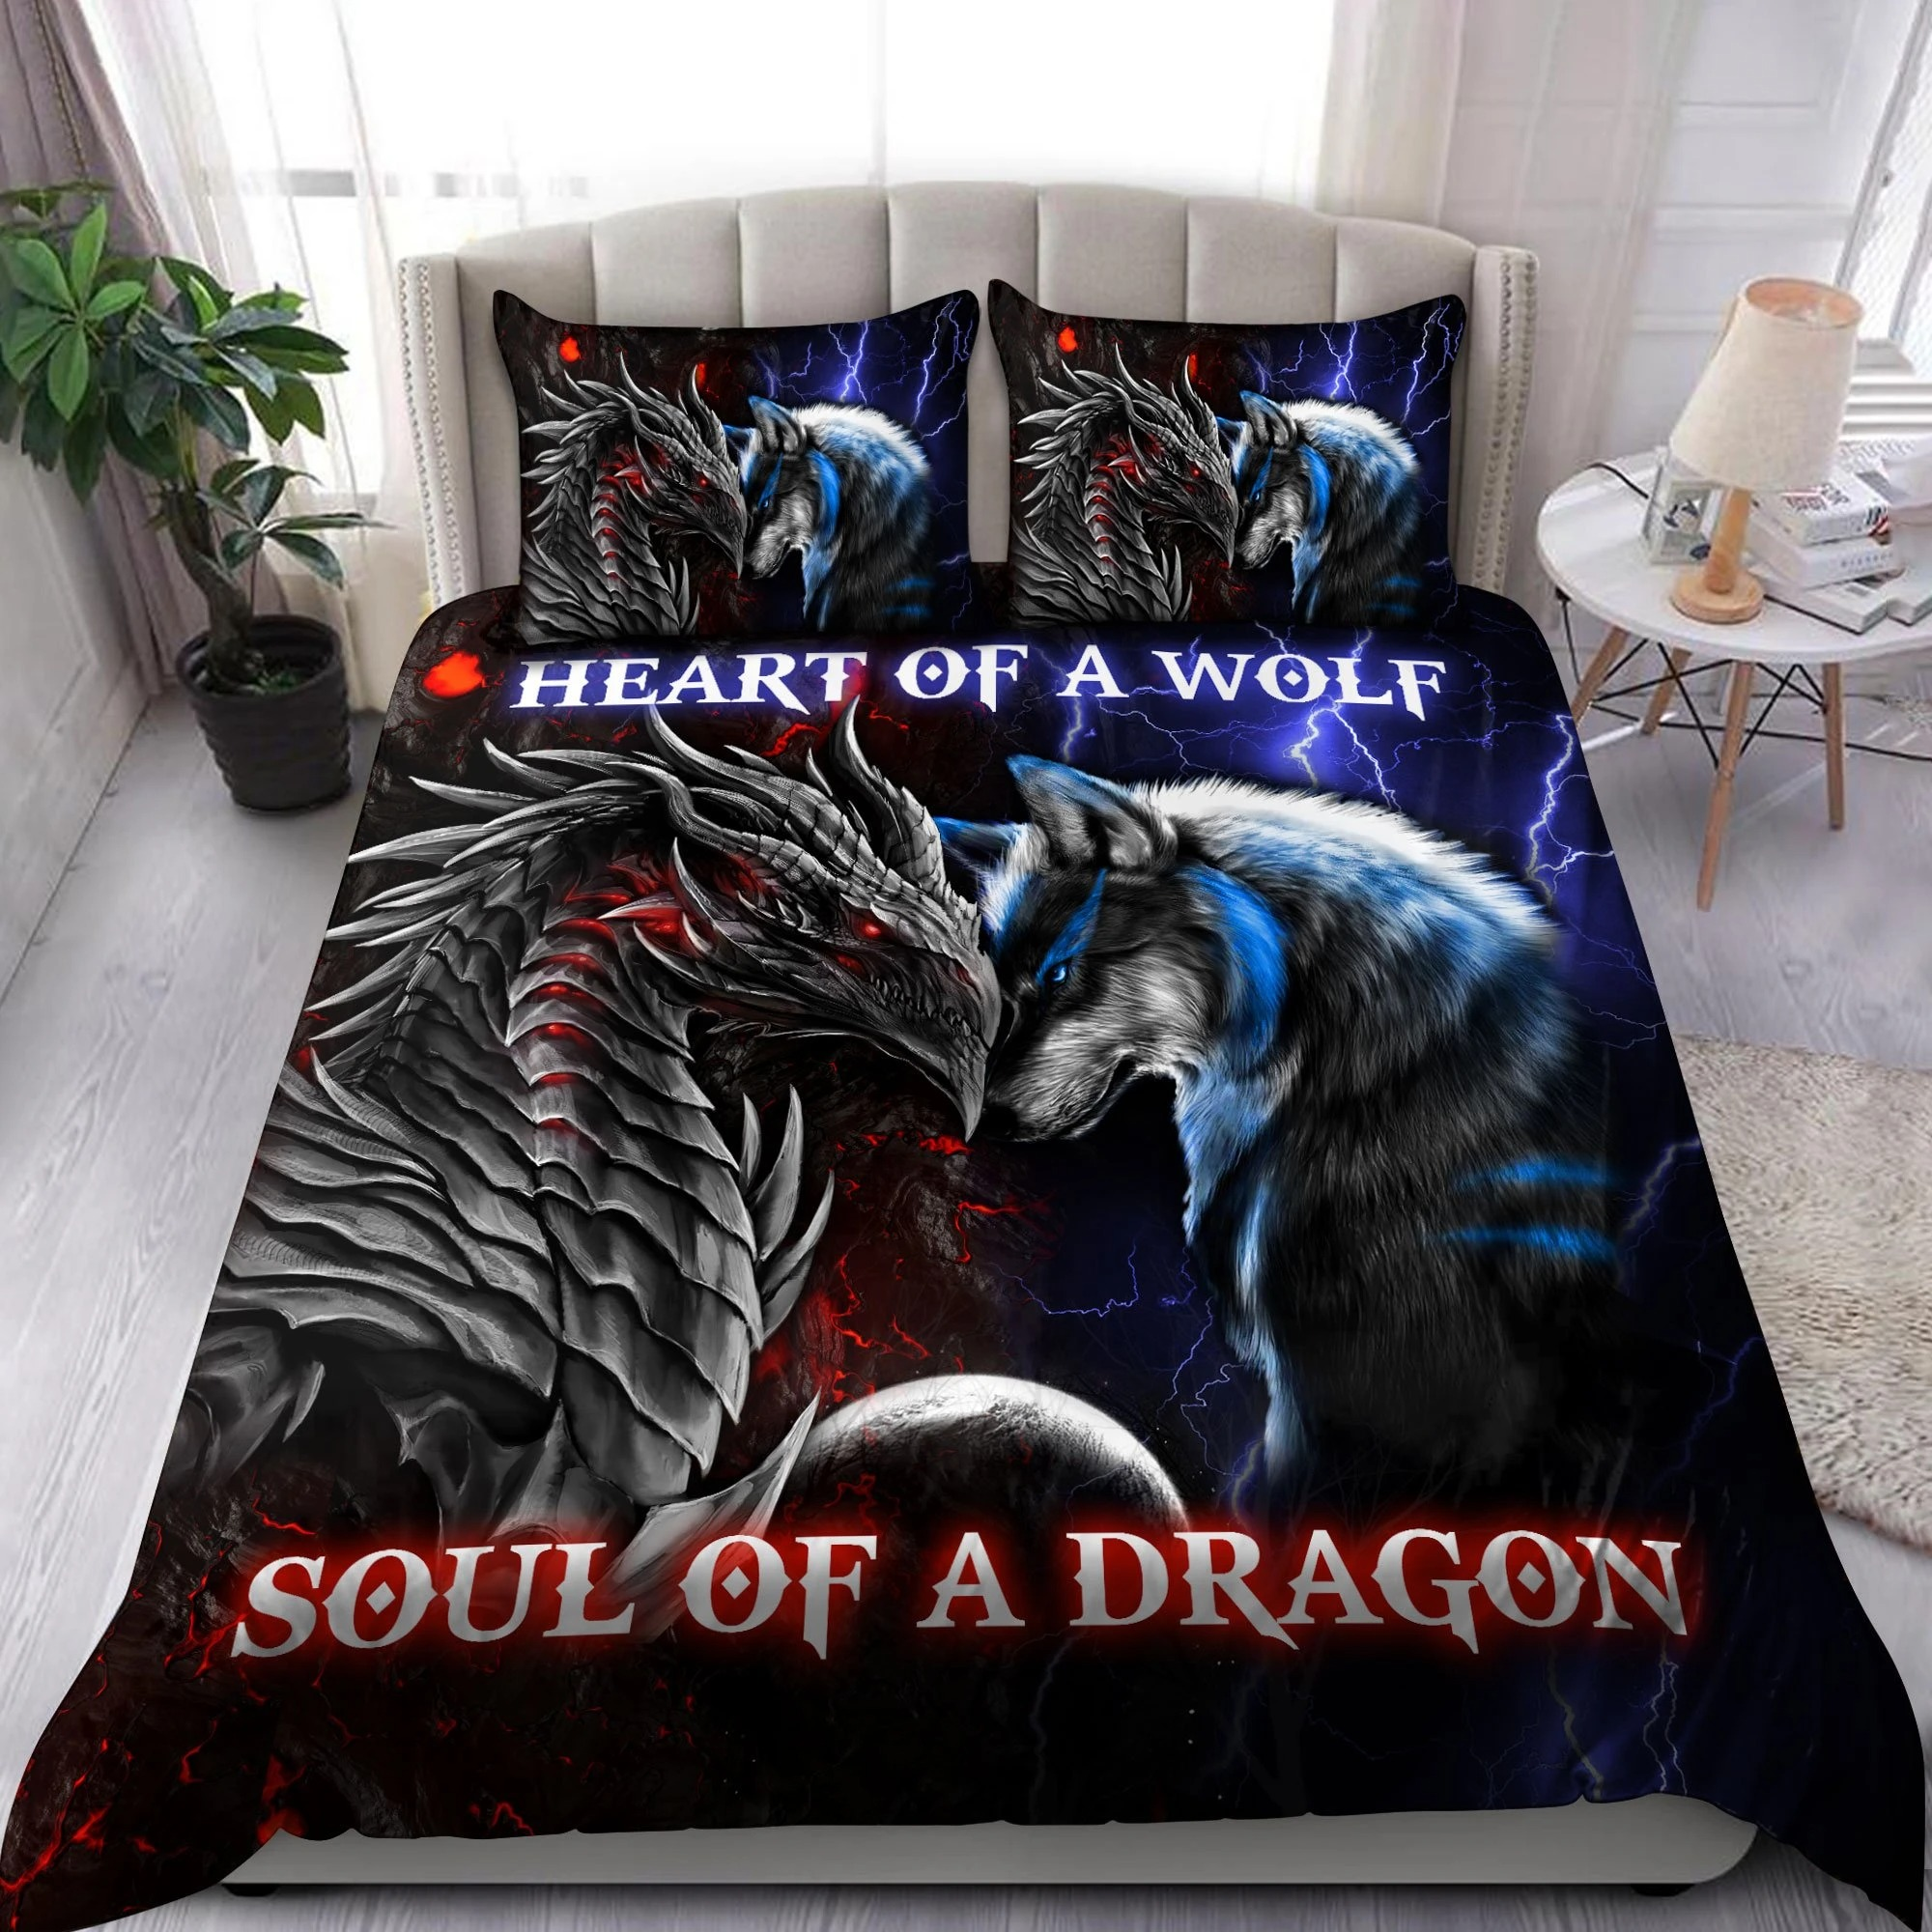 Heart of a wolf soul of a dragon bedding set3